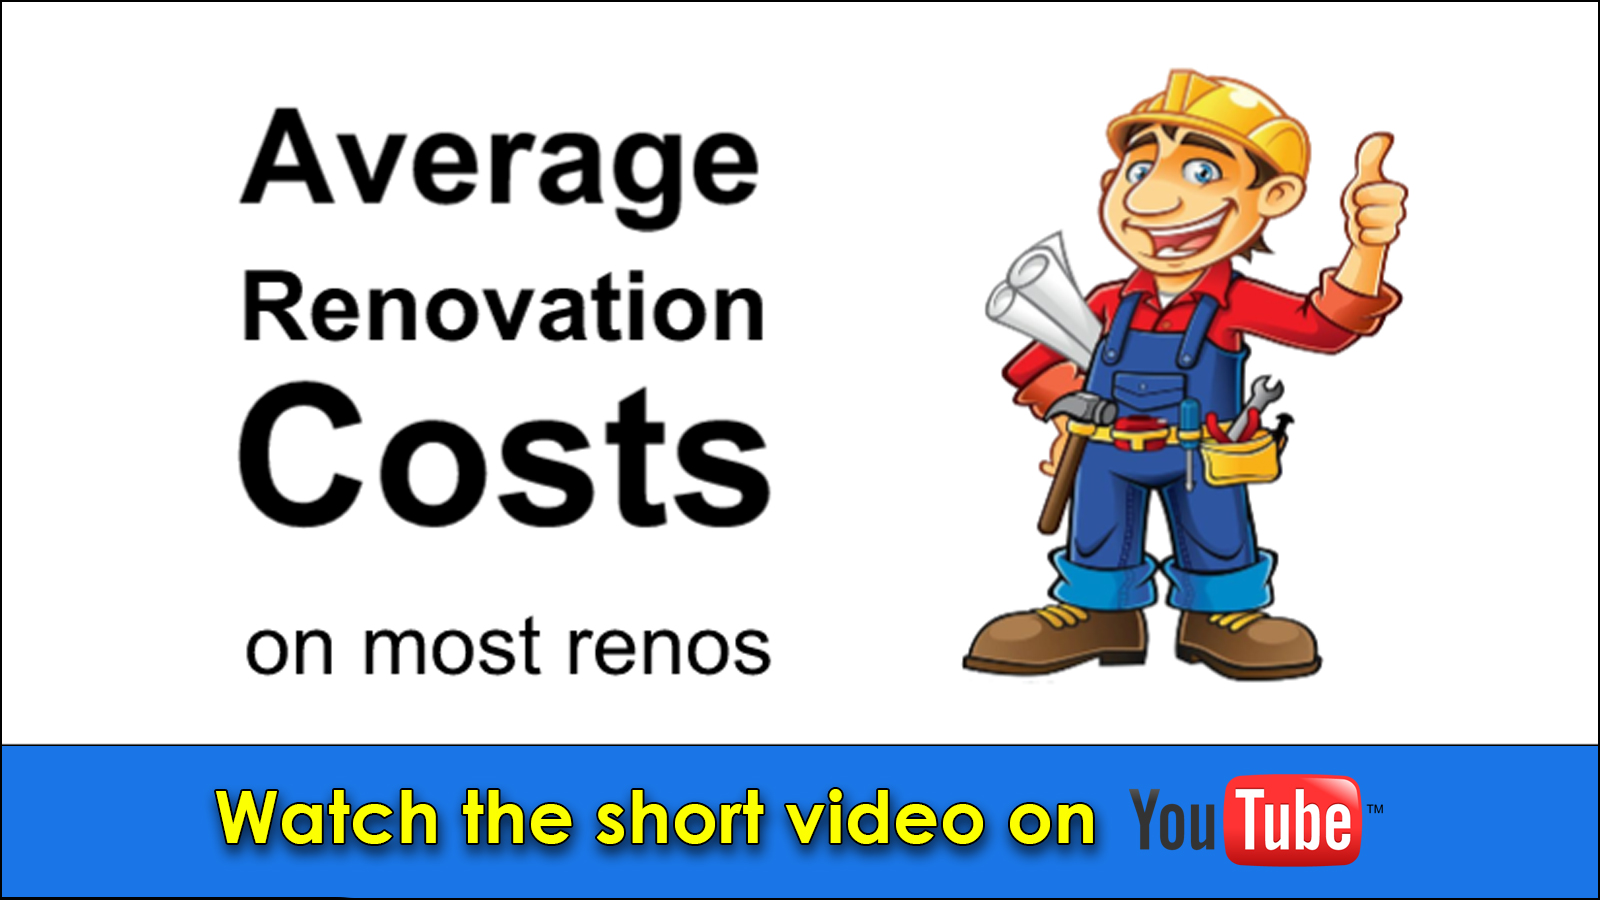 Average renovation costs on most renos